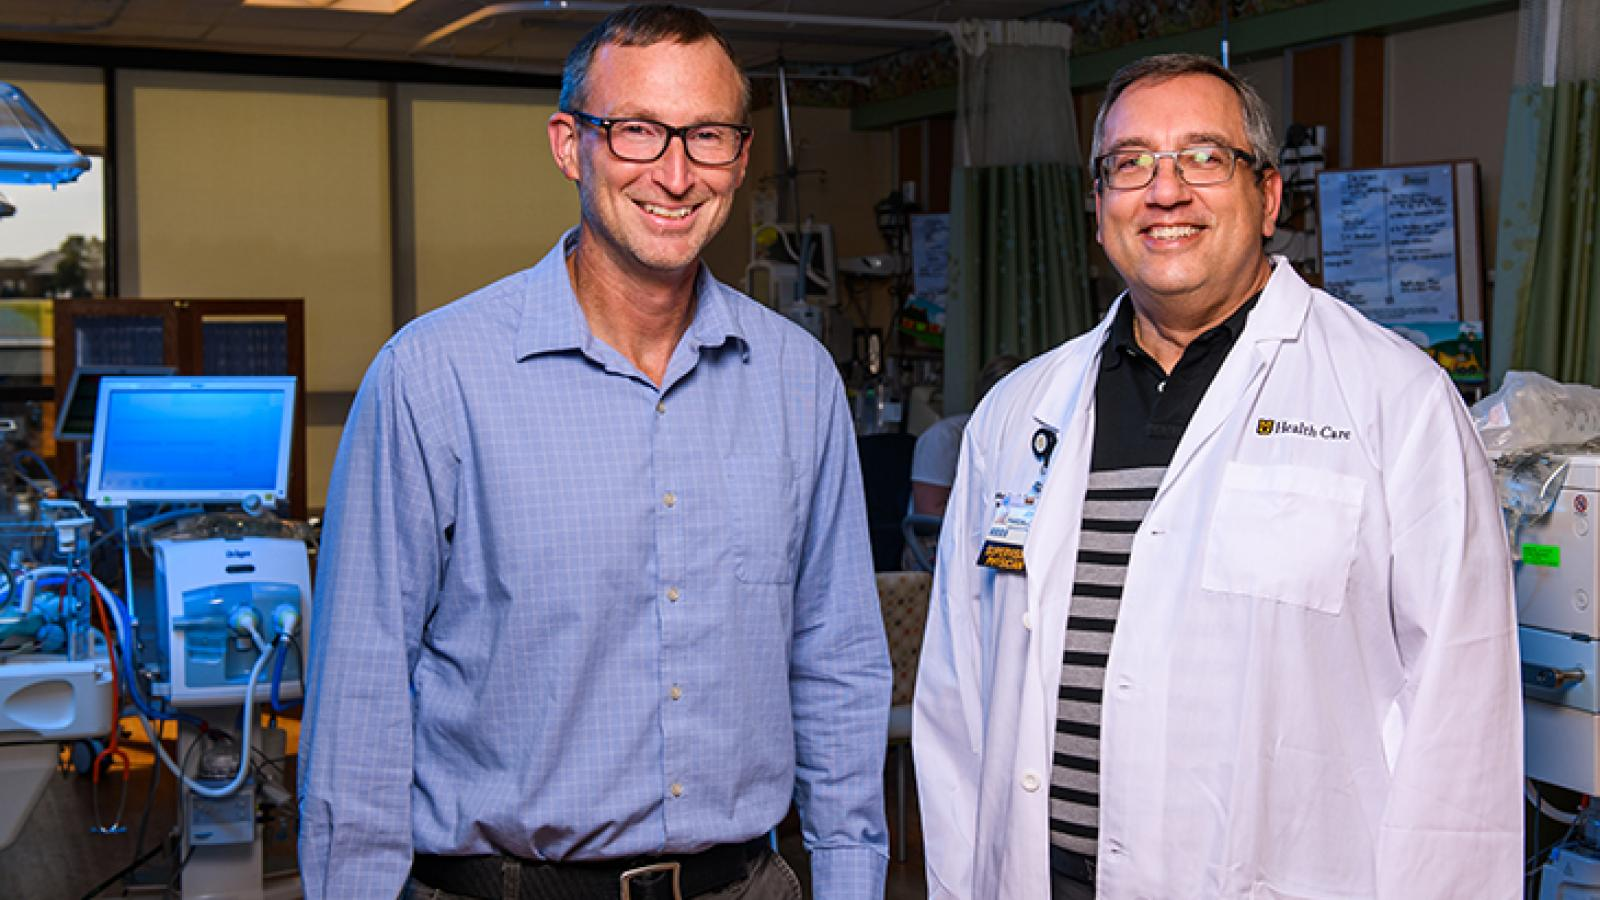 Photo of Dr. Fales and Dr. Pardalos